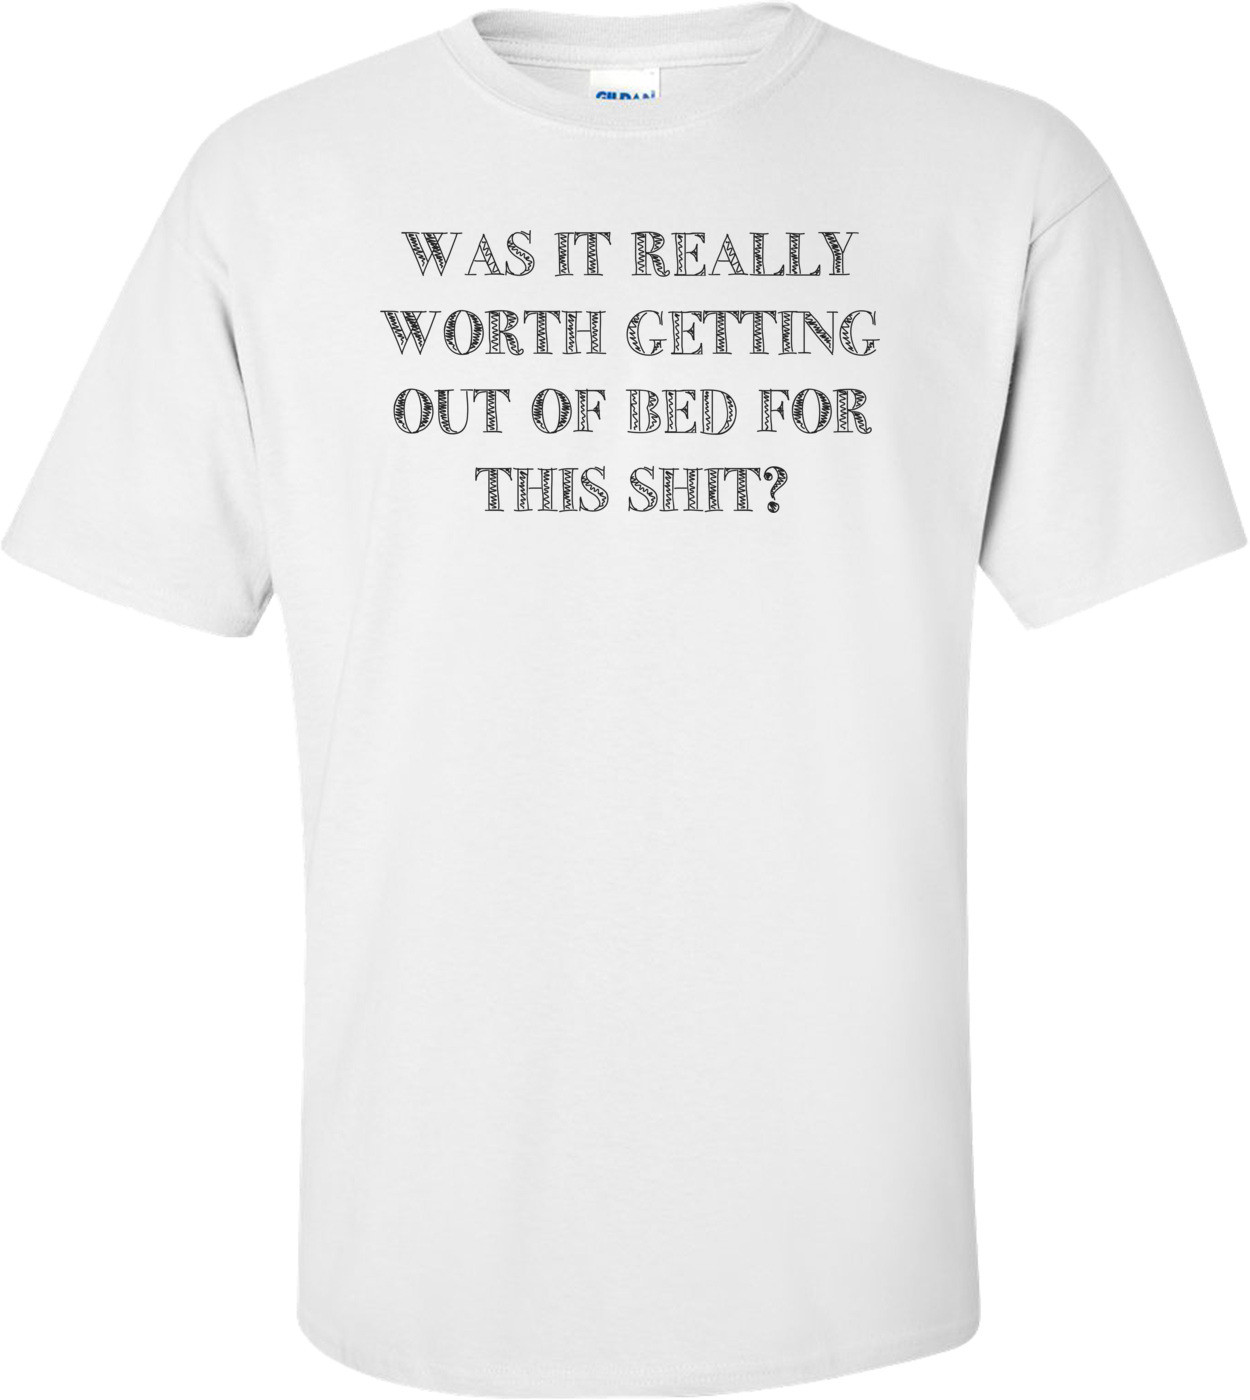 WAS IT REALLY WORTH GETTING OUT OF BED FOR THIS SHIT? Shirt